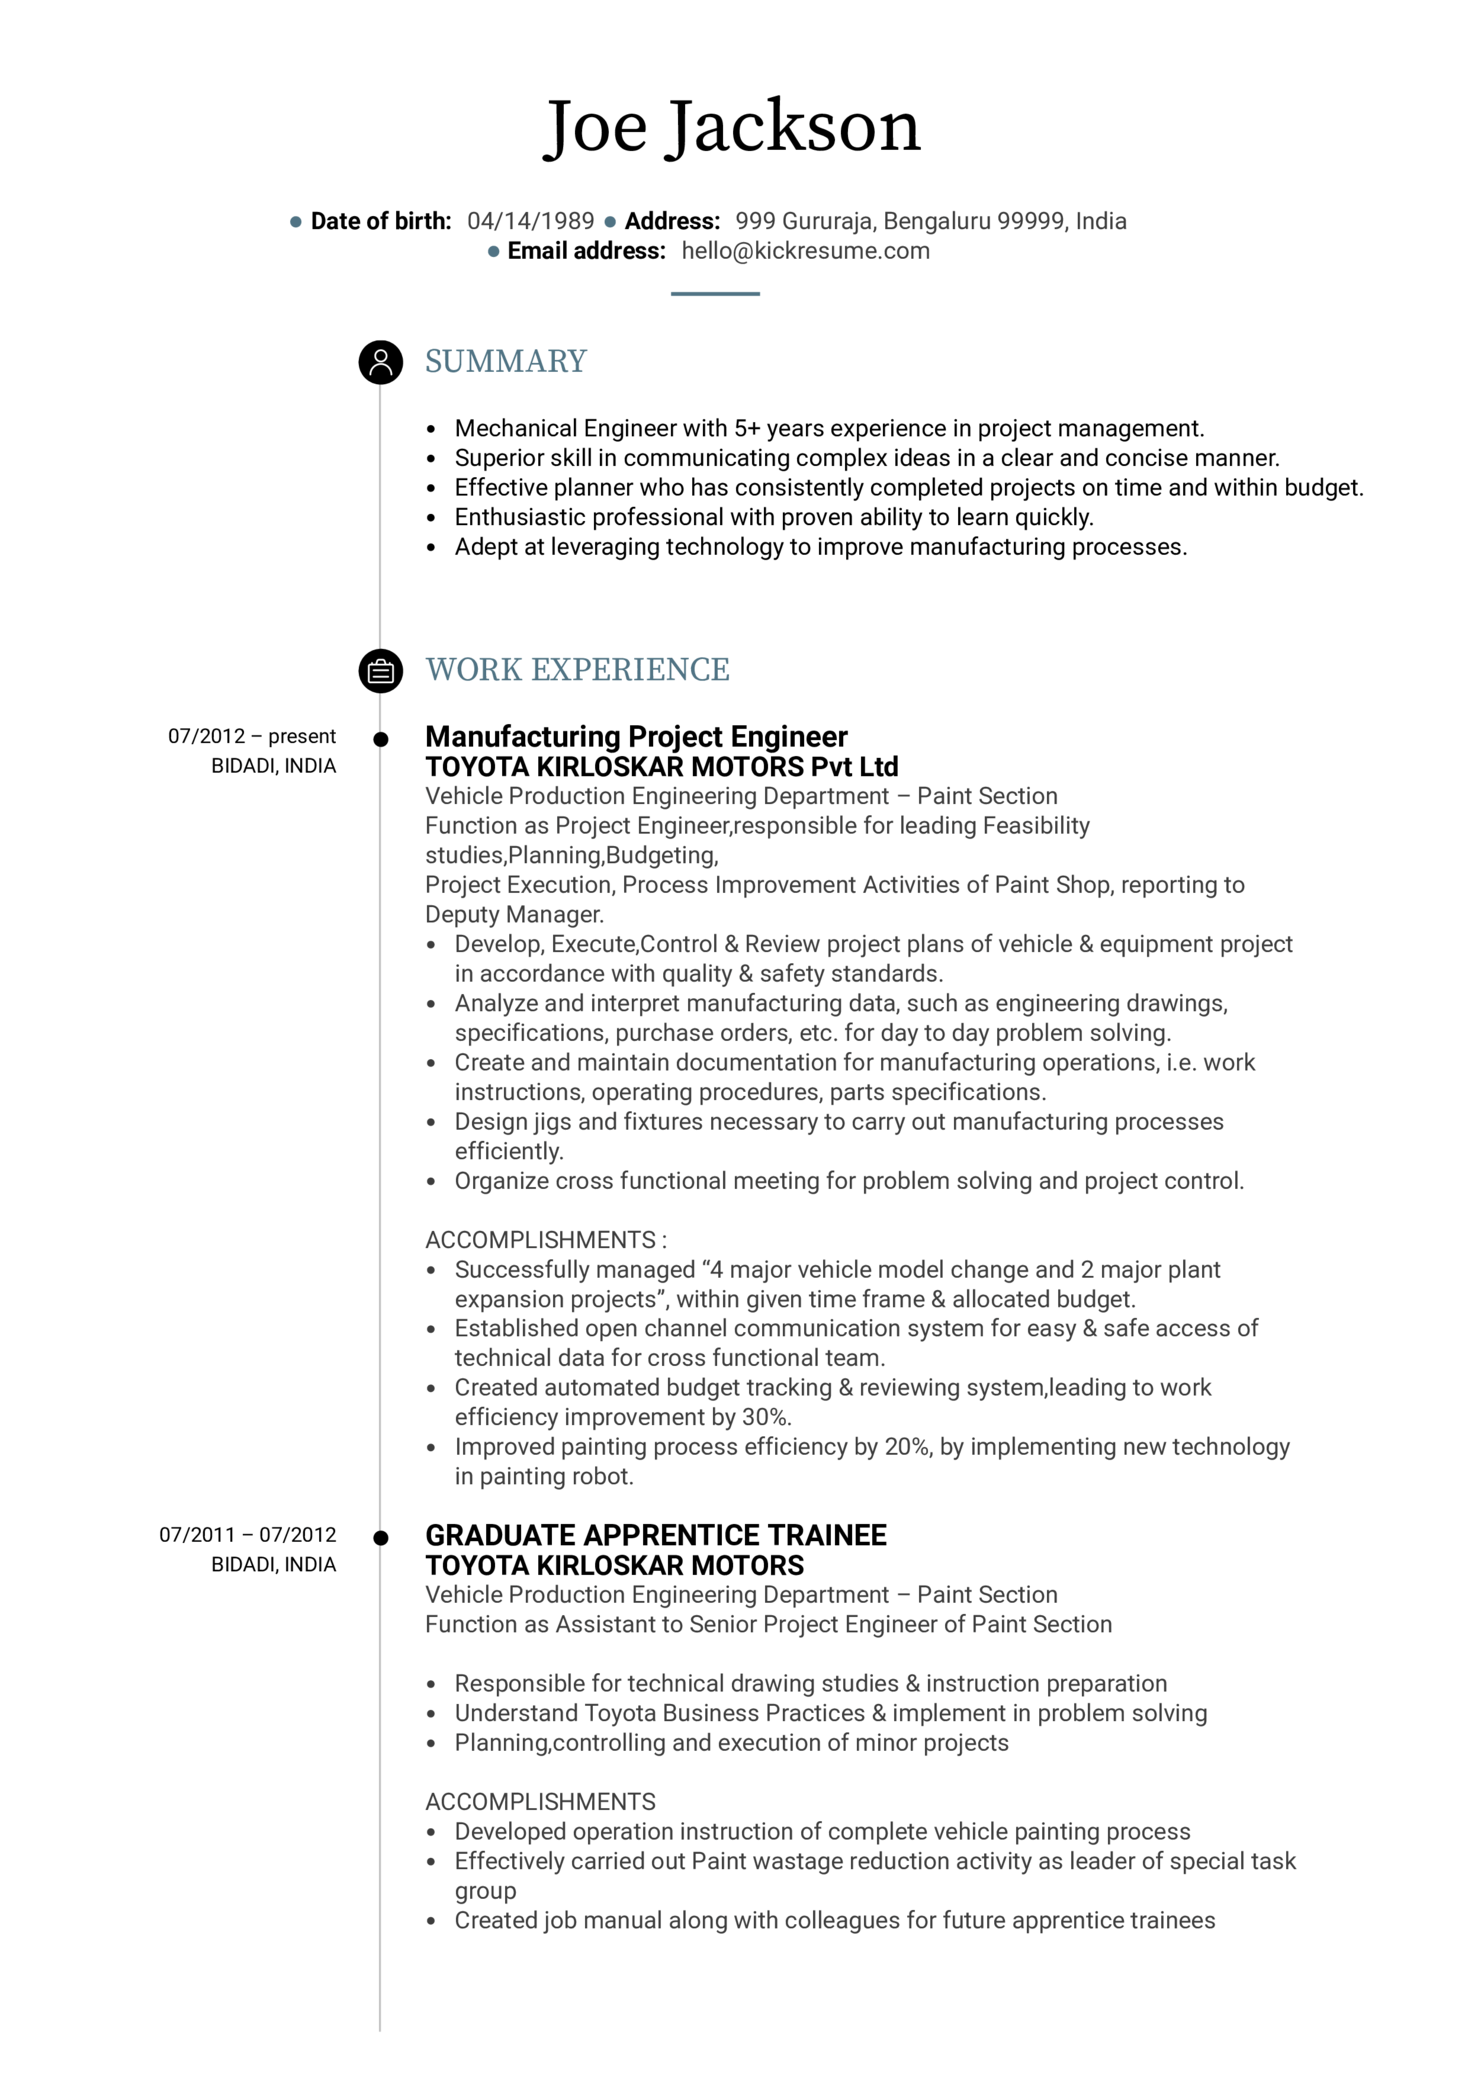 cv sample for engineering